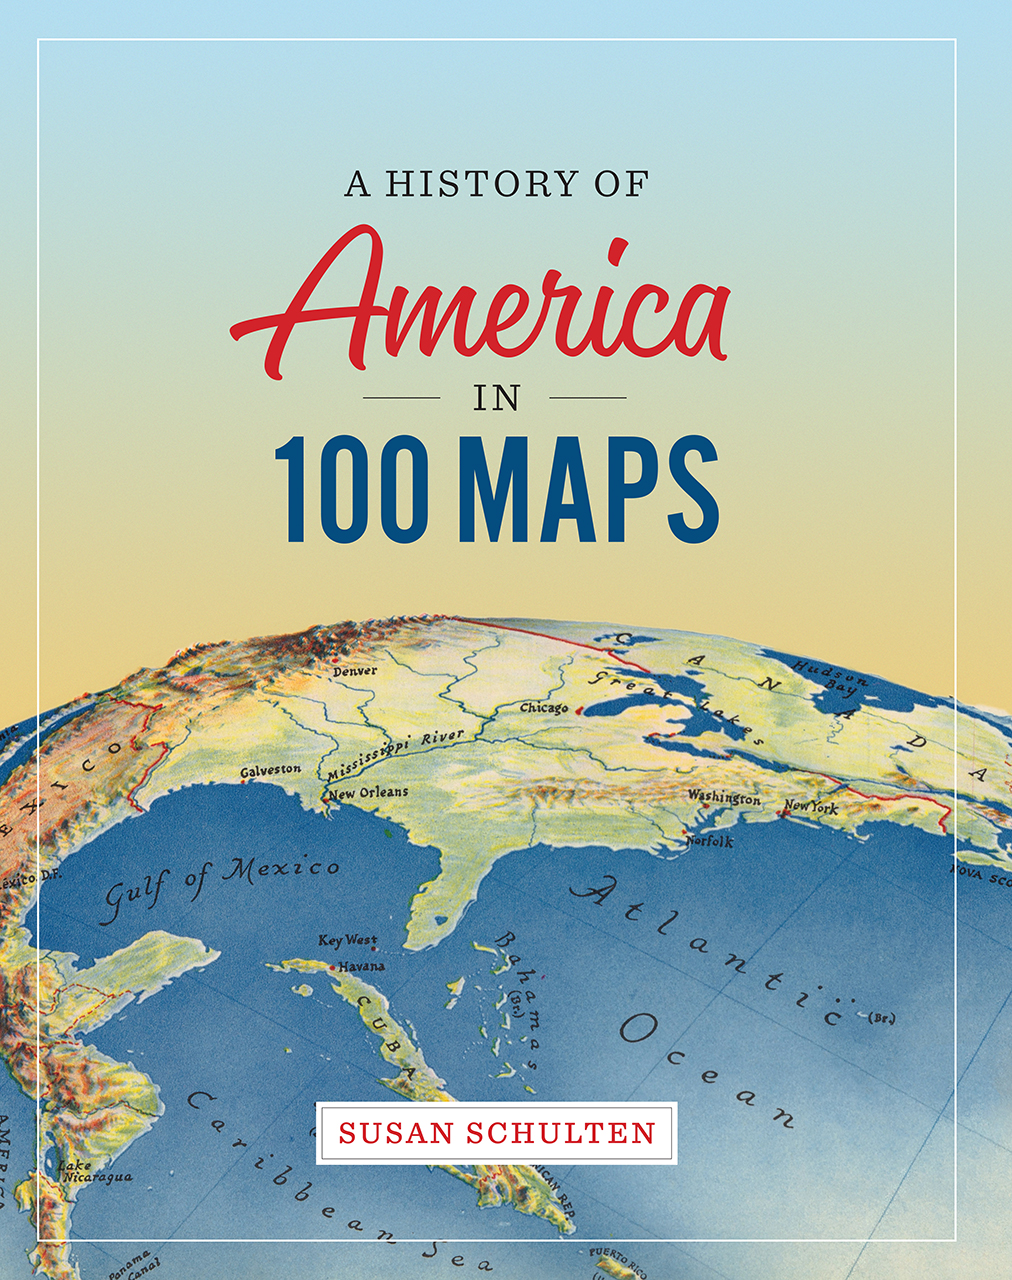 Map Of America Showing Chicago.A History Of America In 100 Maps Schulten